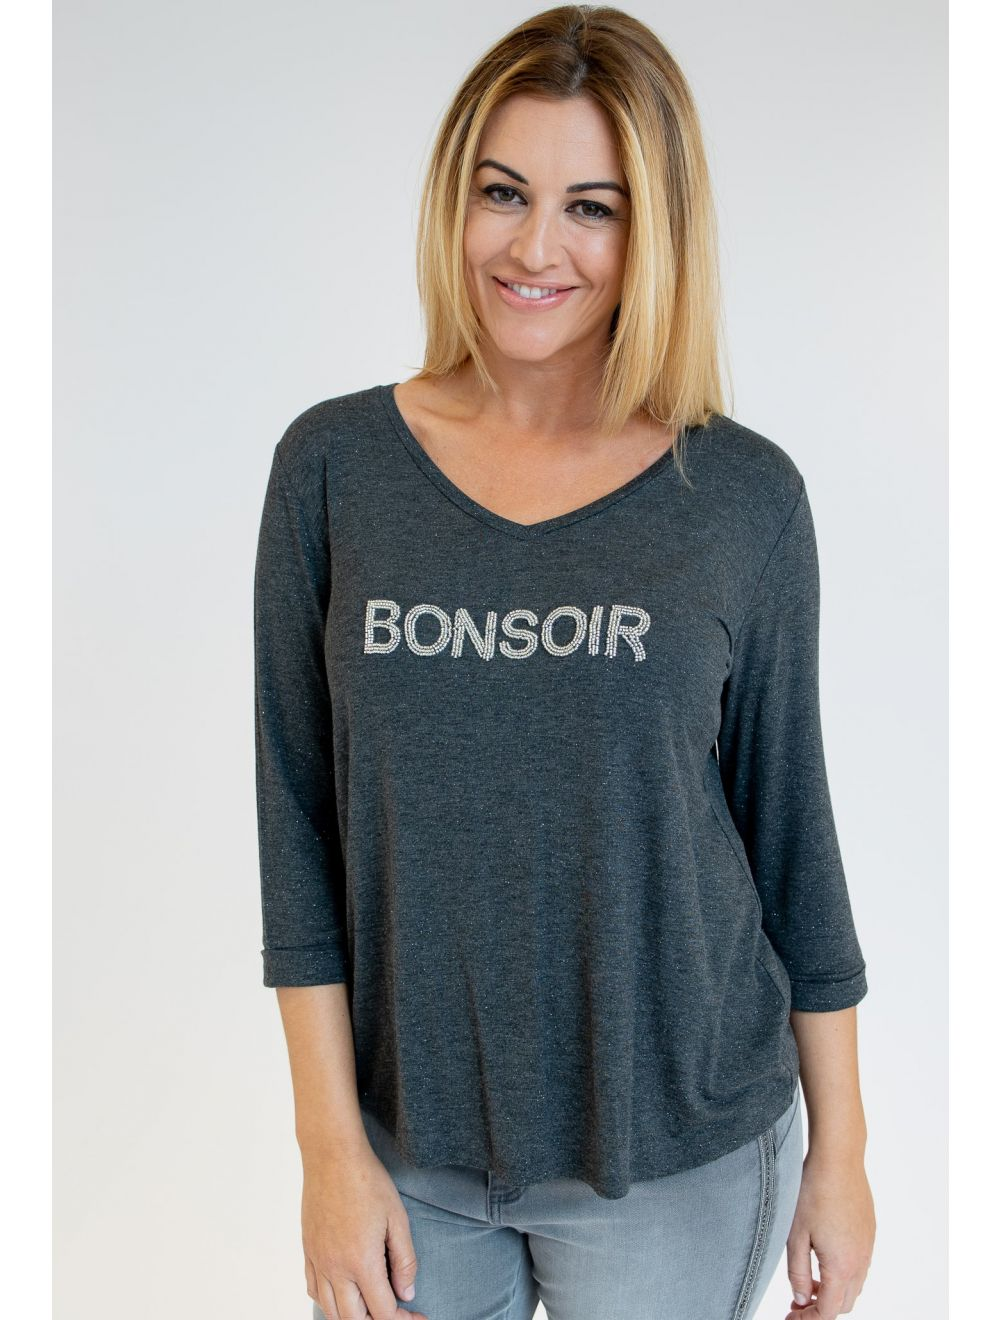 CAMISETA BEADS BONSOIR